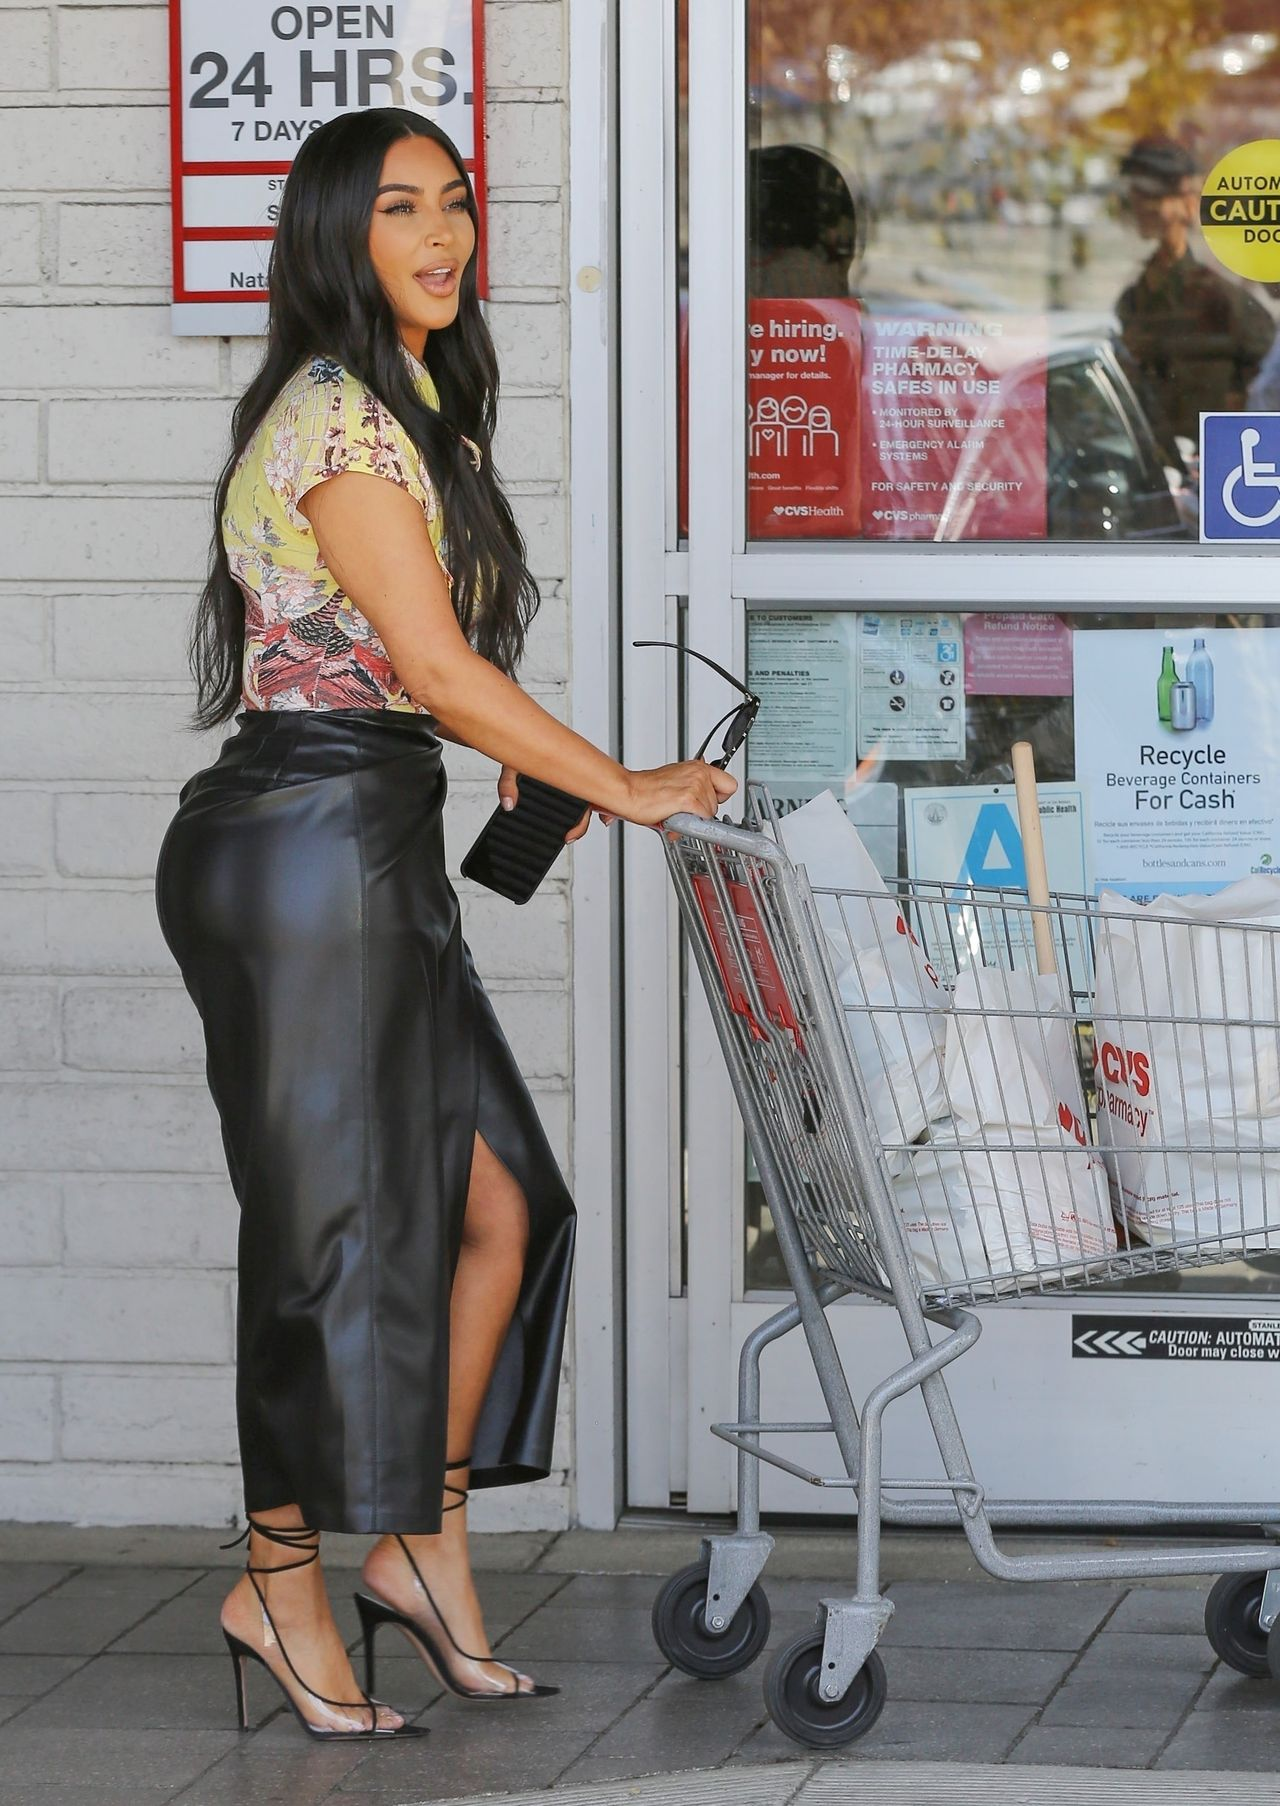 Kim Kardashian . Fot. BACKGRID / Backgrid USA / Forum